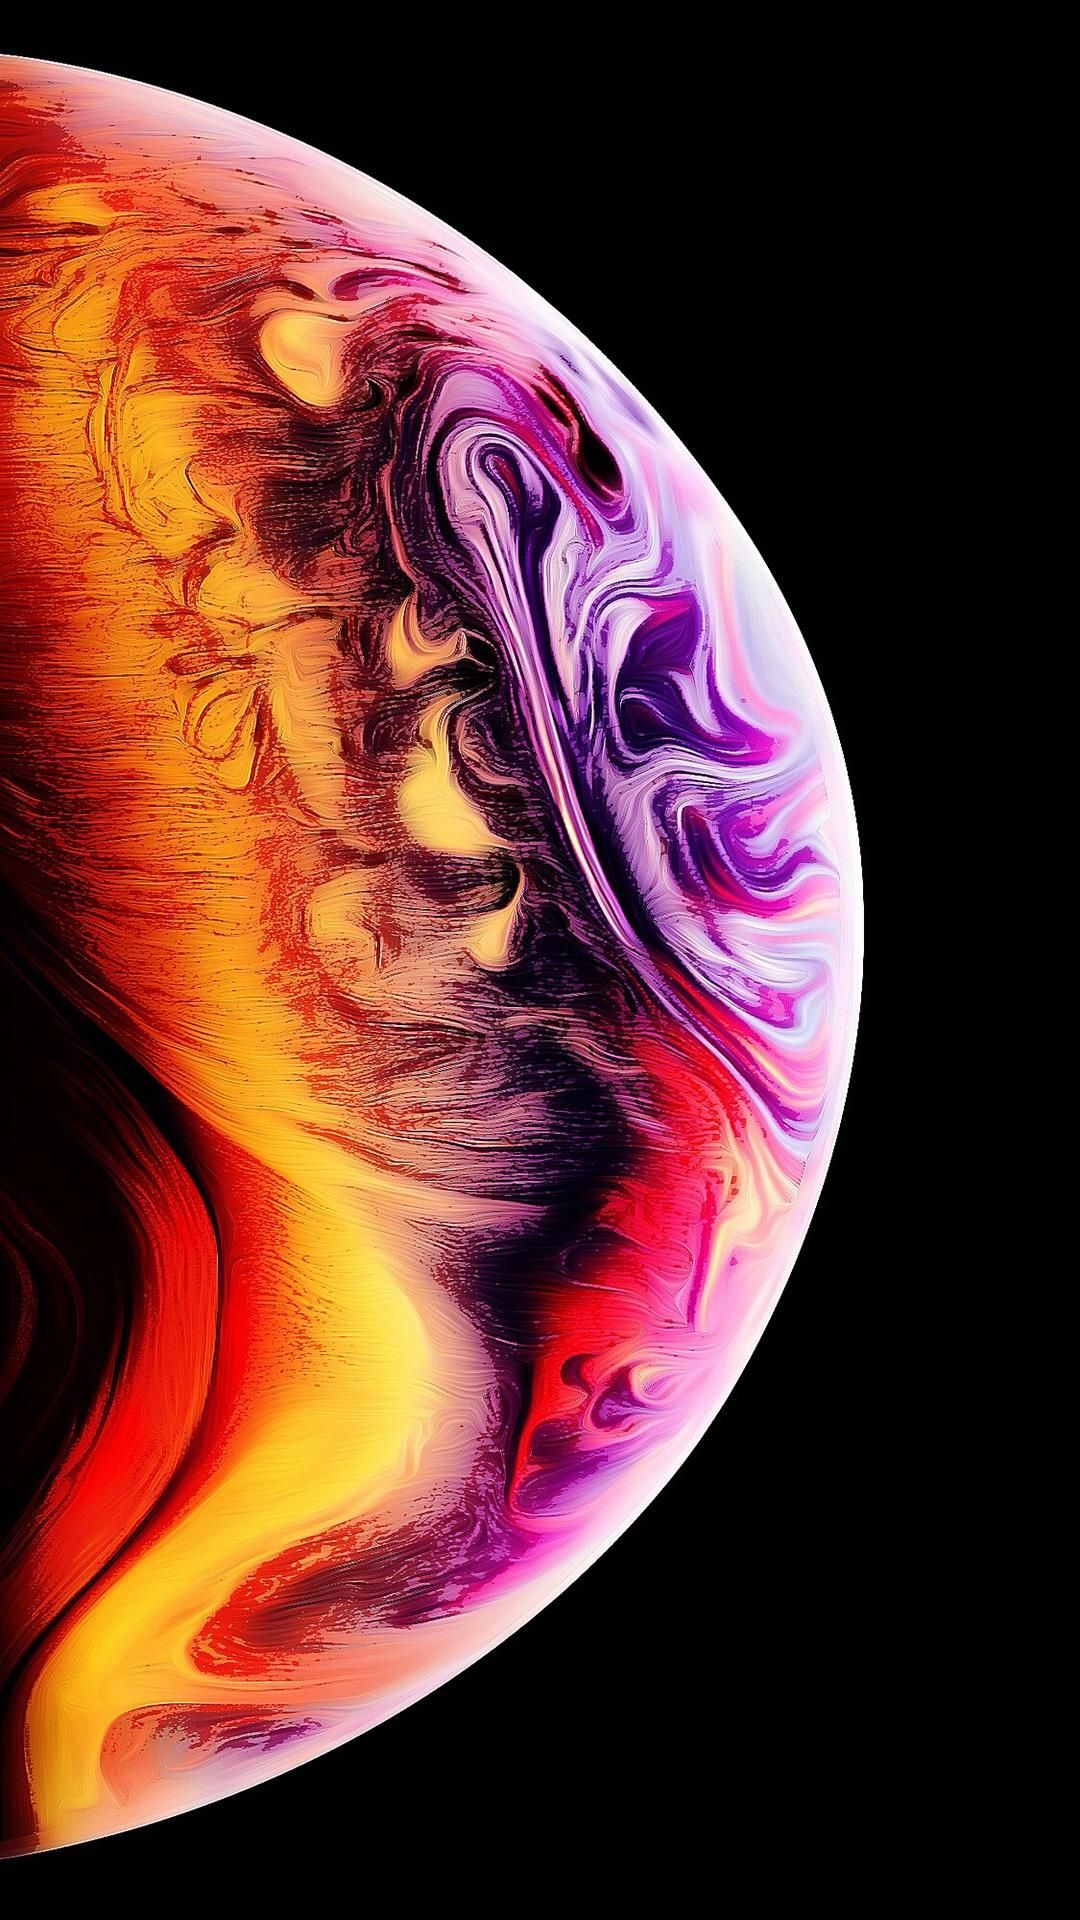 Iphone Xs Wallpaper Mode By Ar7 Big Thanks Hd Quality Apple Wallpaper Iphone Iphone Homescreen Wallpaper Iphone 6 Plus Wallpaper